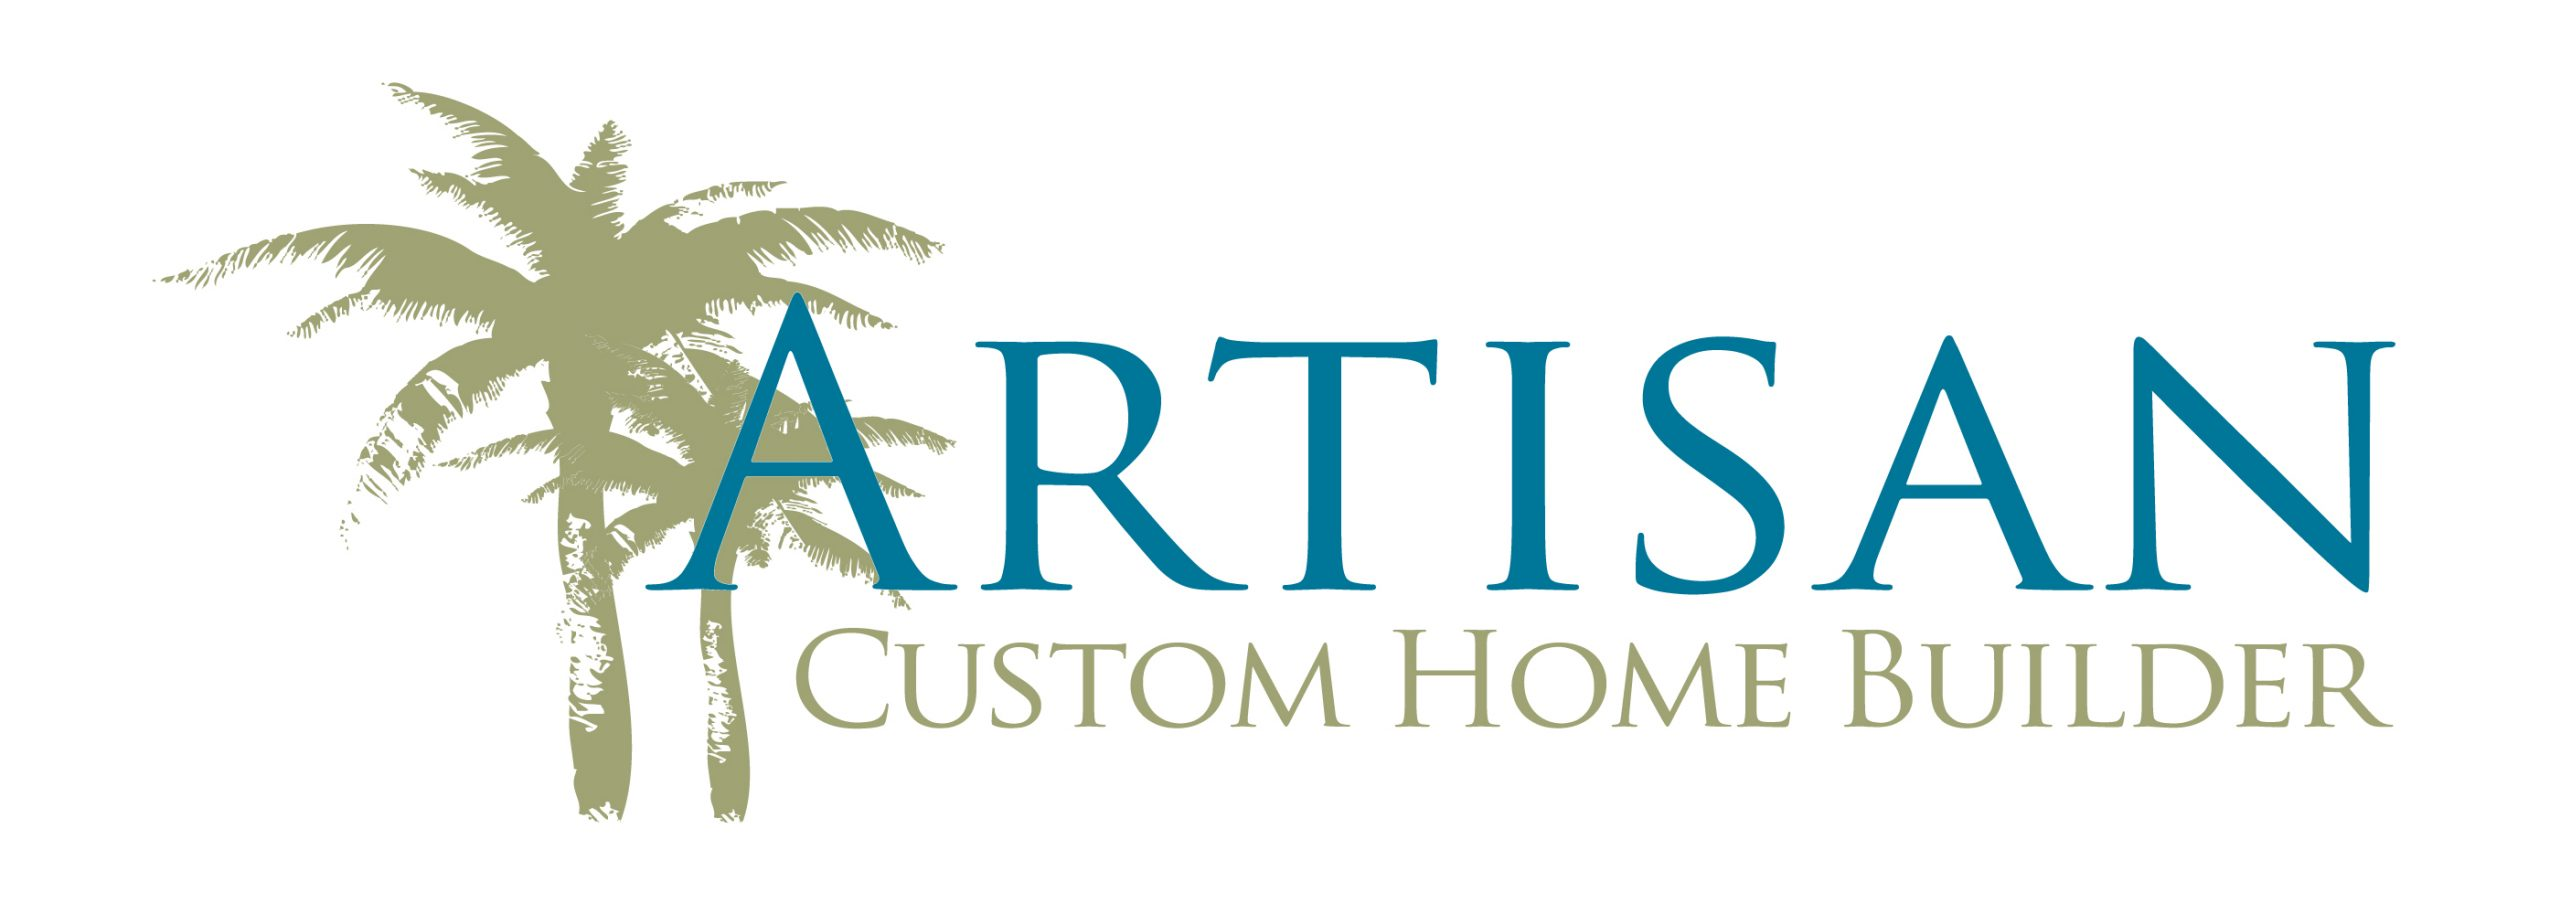 Artisan Homes Hilton Head Island Home Builders